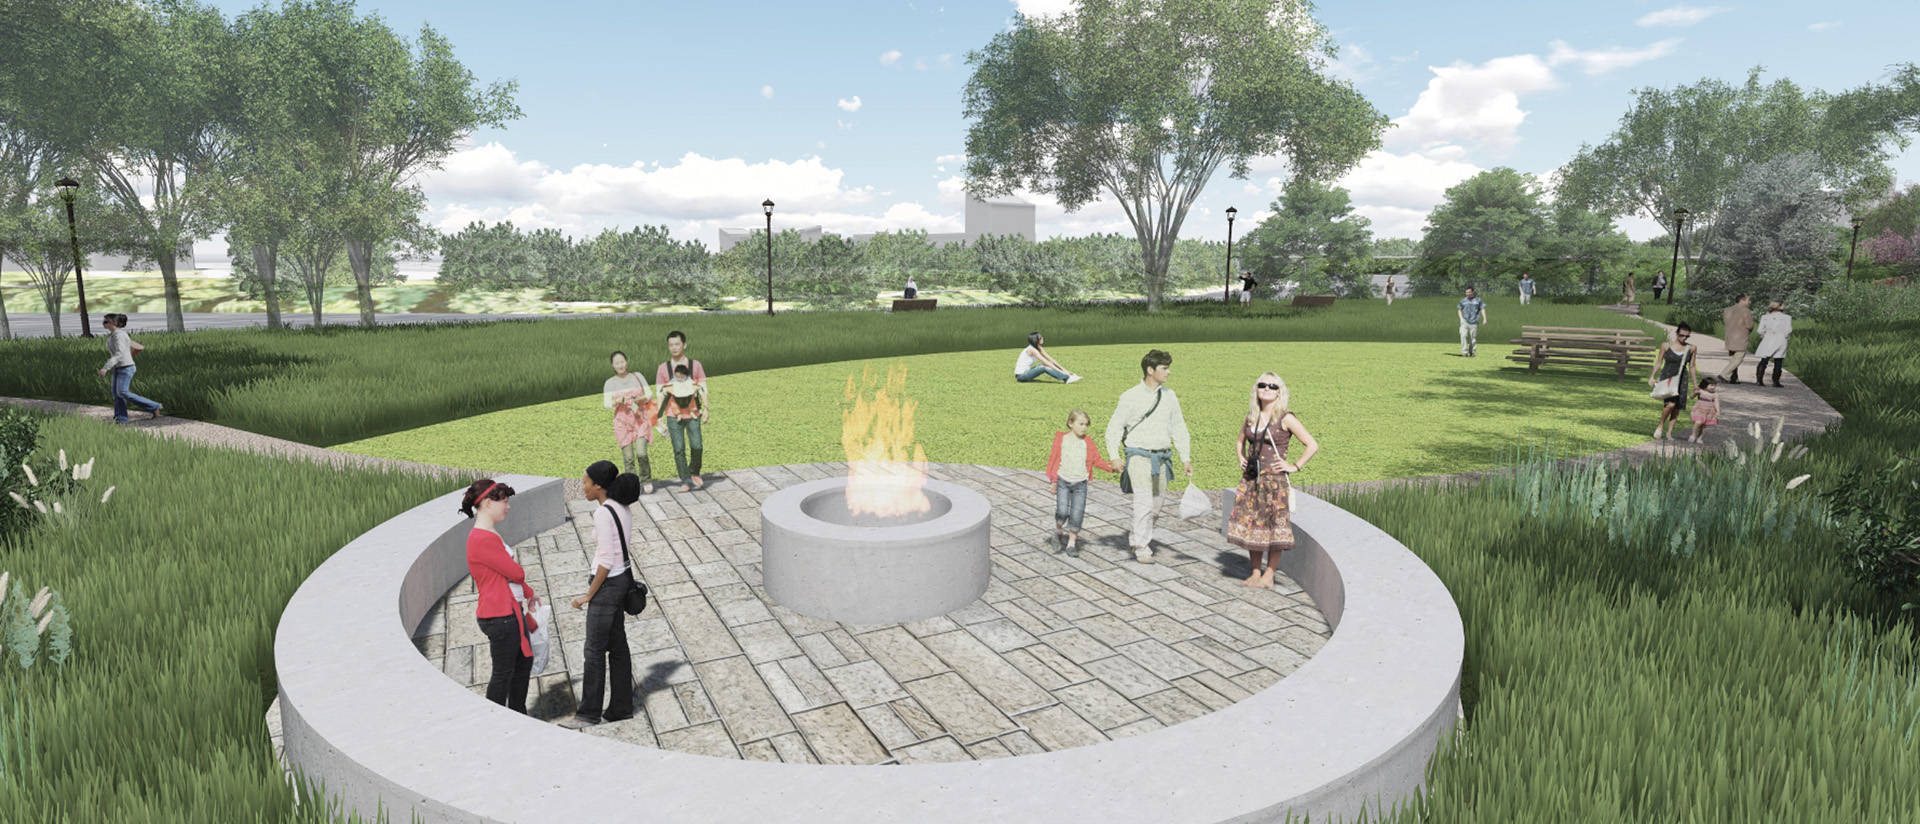 Artist's rendering of Garfield Avenue project's outdoor classroom space